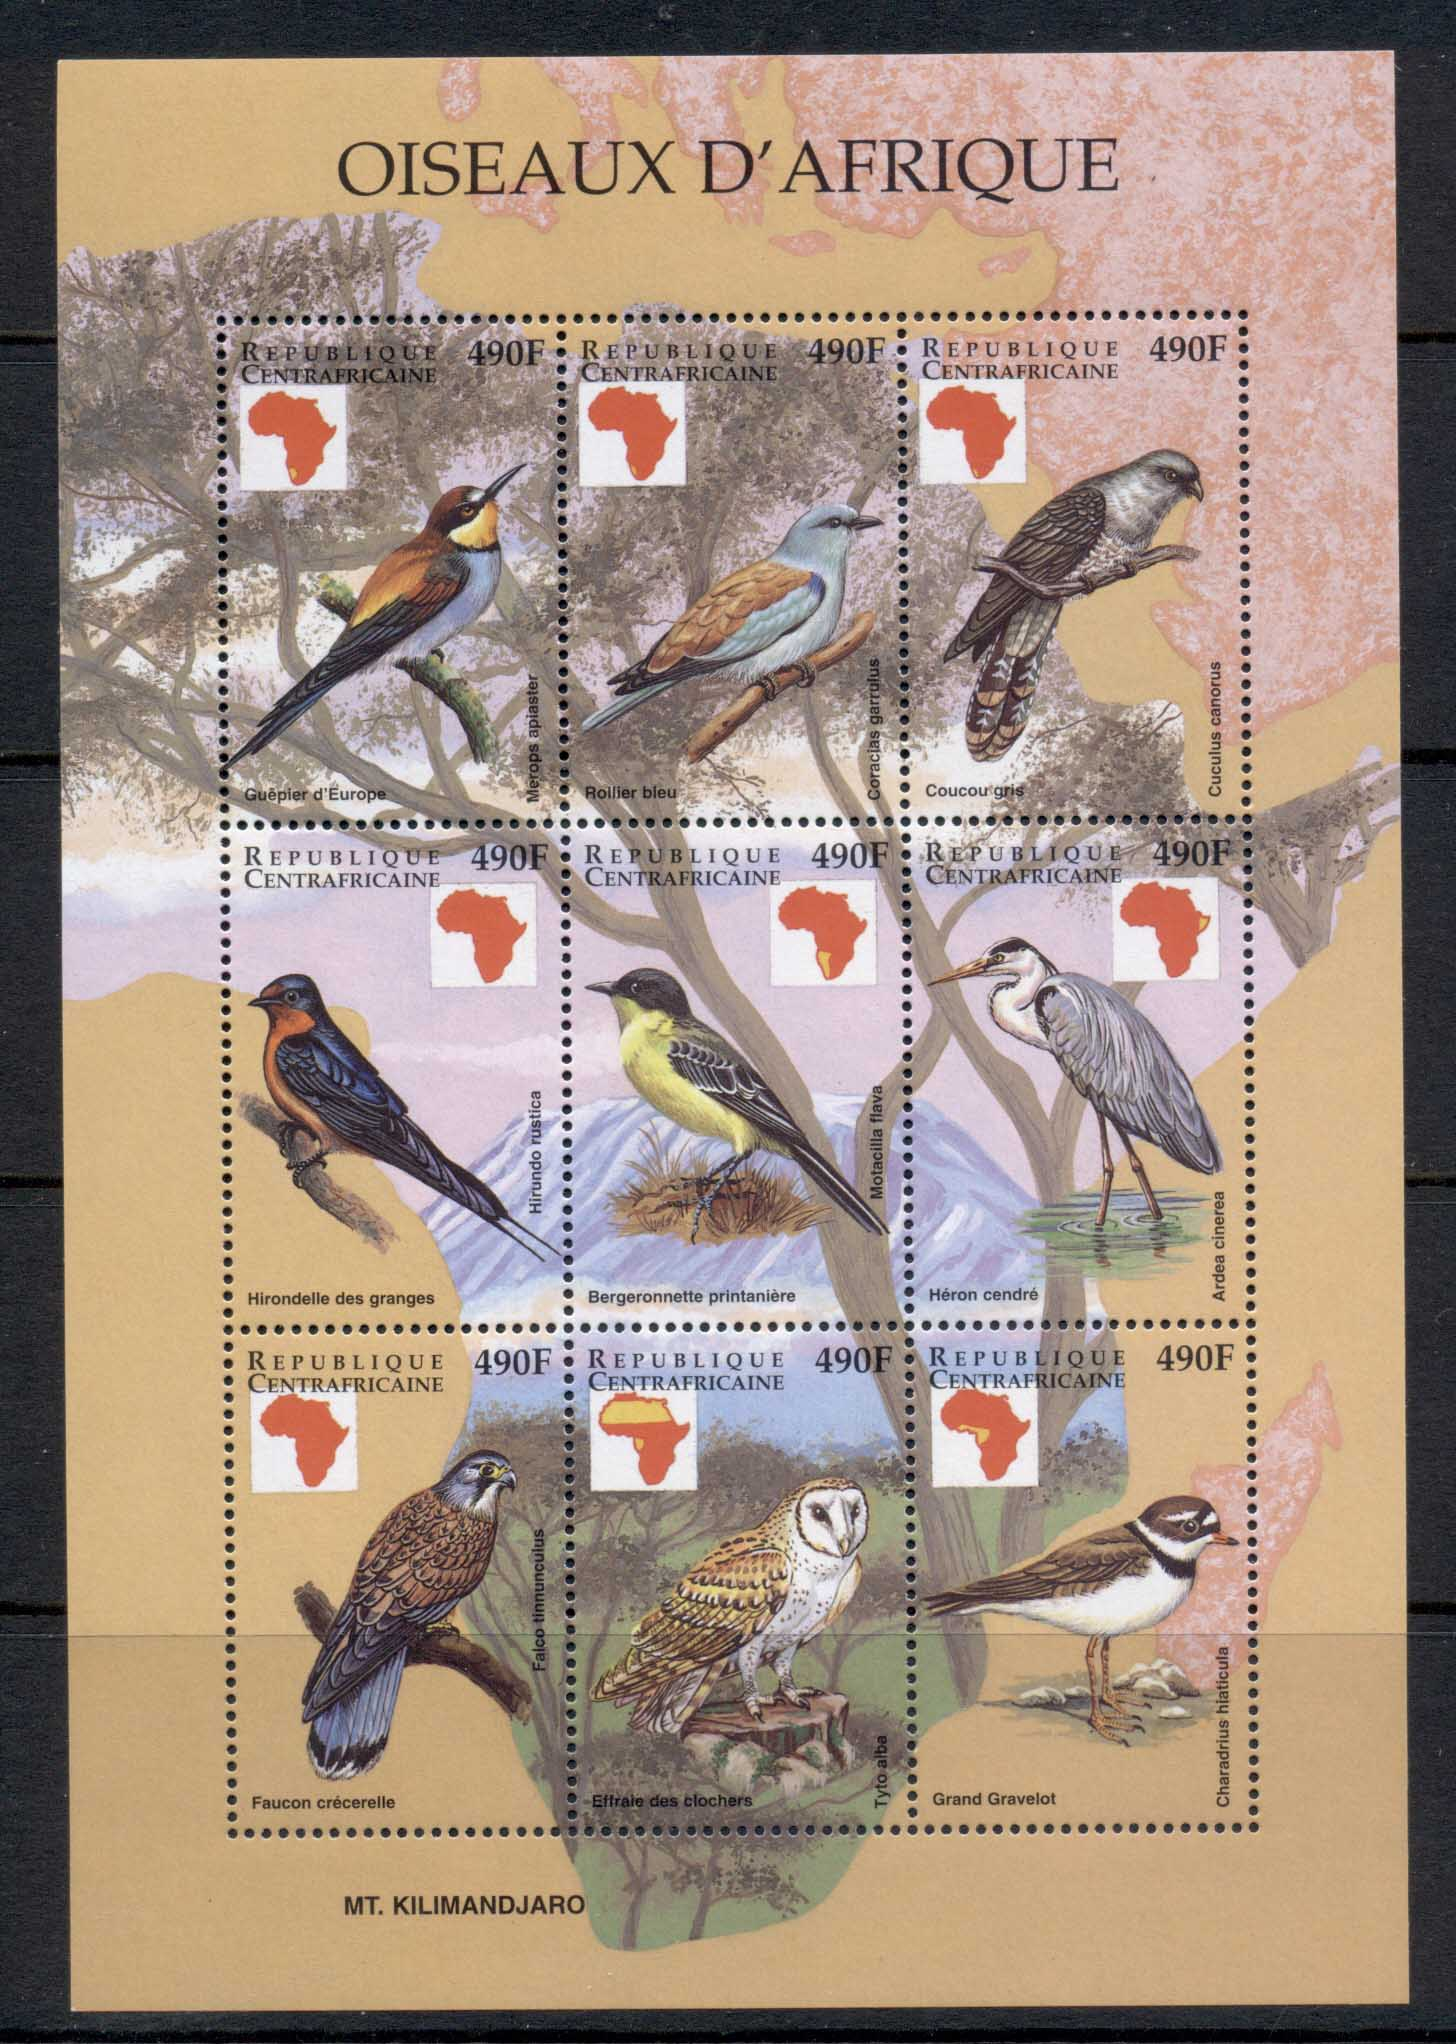 Central African Republic 1999 Birds of Africa sheetlet 490f MUH